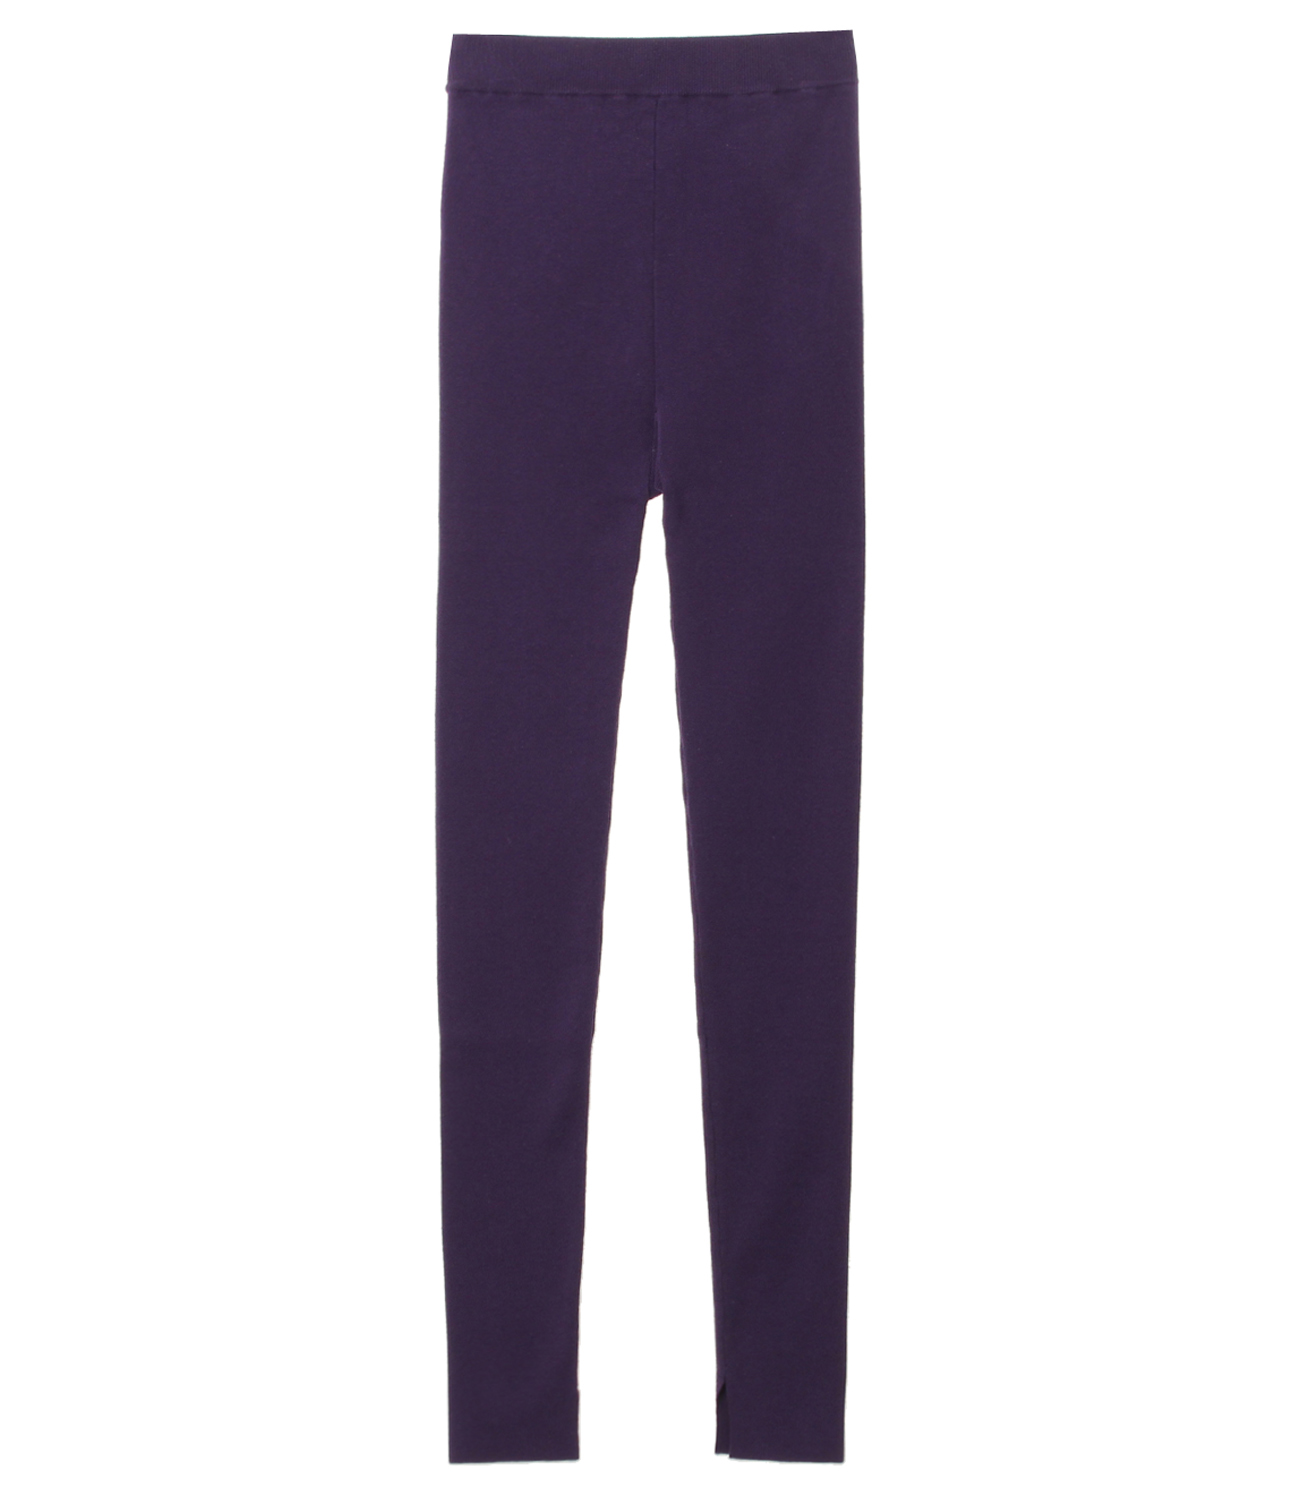 Cotton sweater legging 詳細画像 purple 1